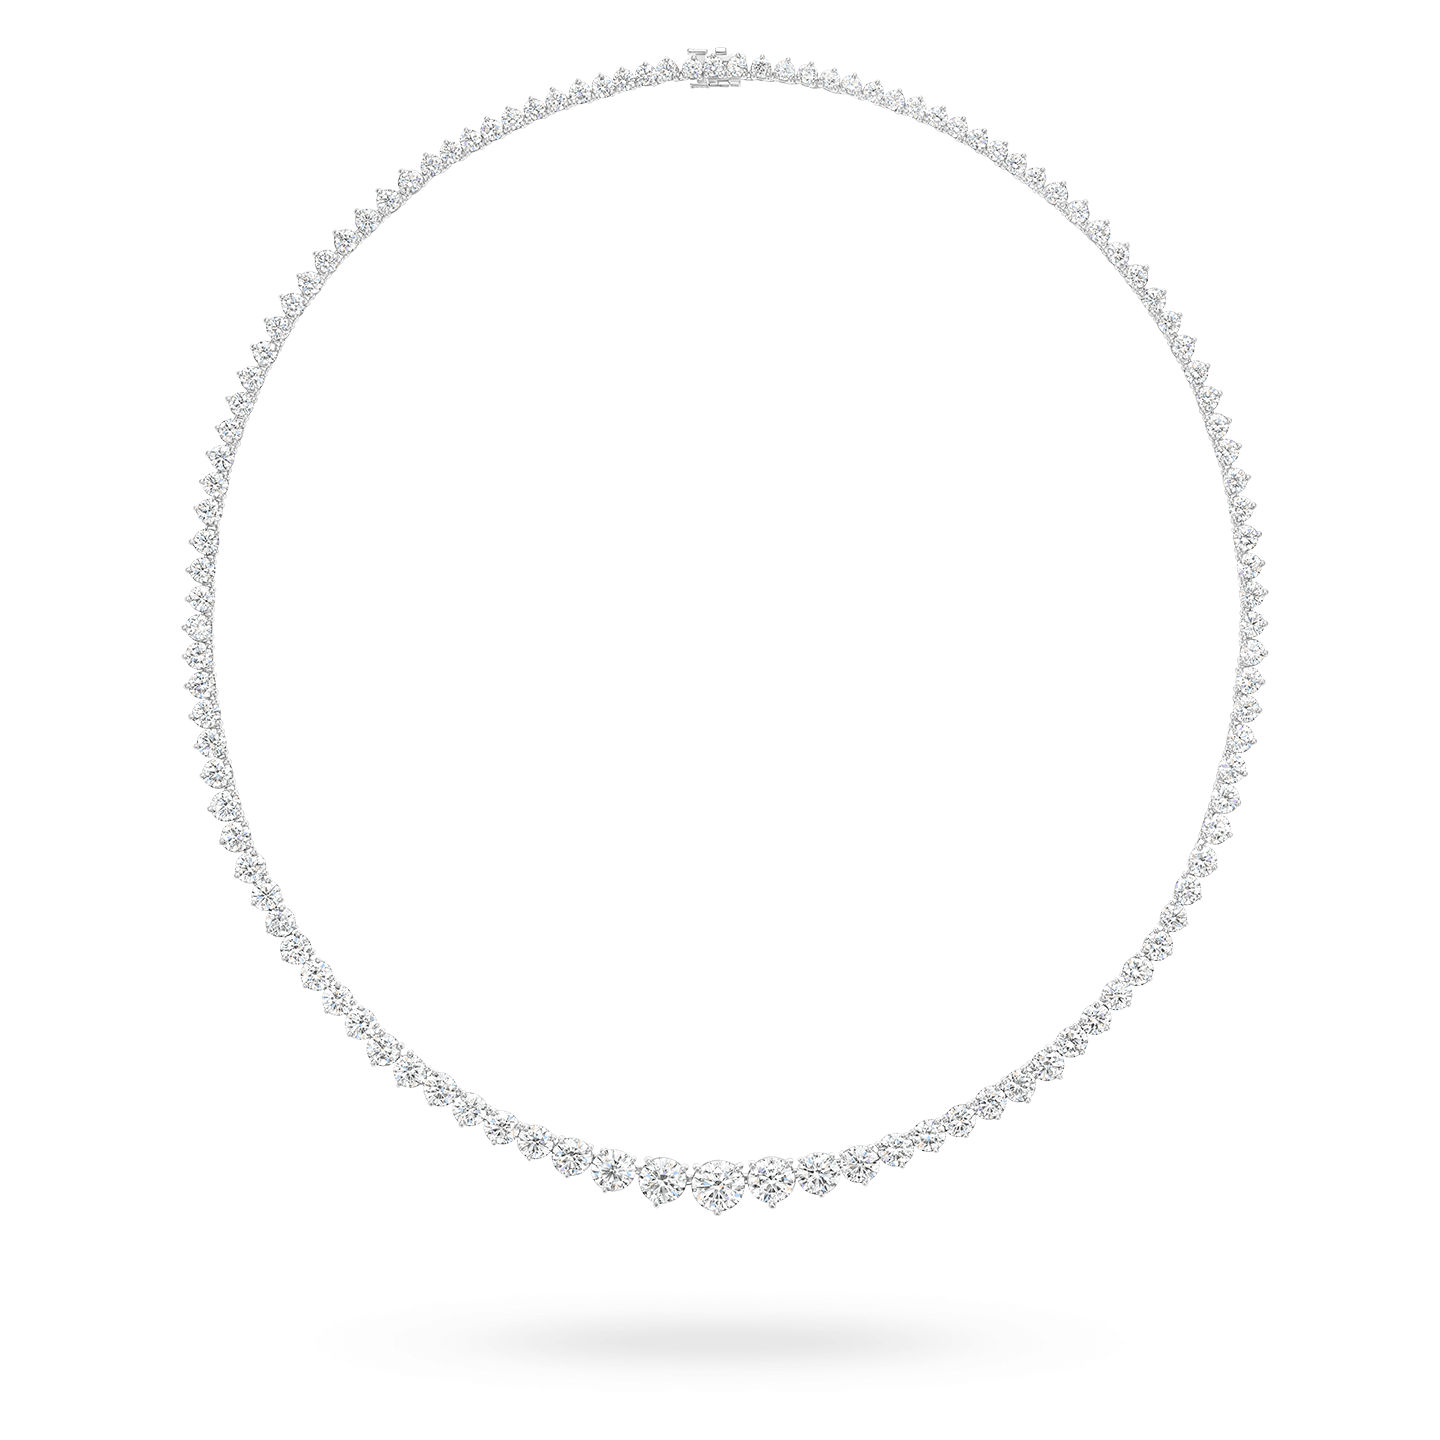 Round Brilliant Riviere Diamond Necklace, Product Image 1